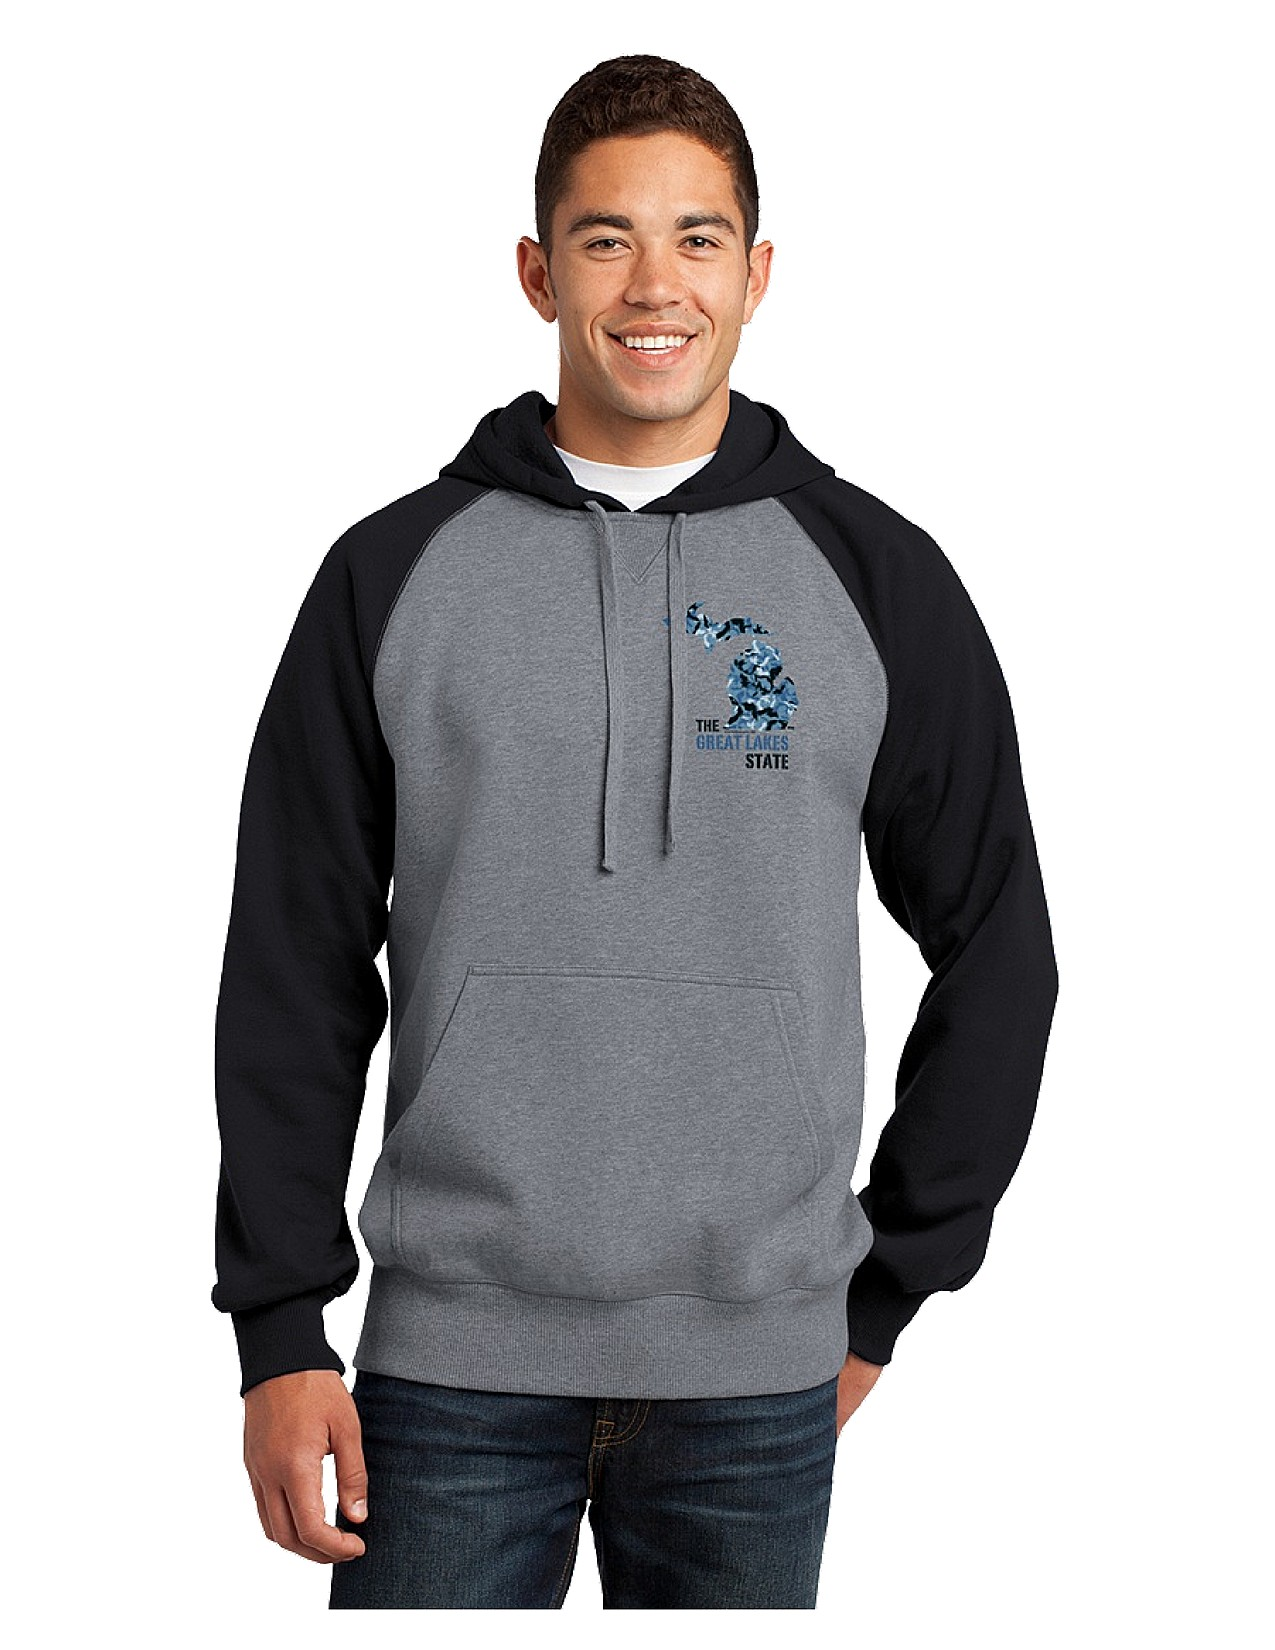 Blue/Heather hoodie with blue Michigan camo design